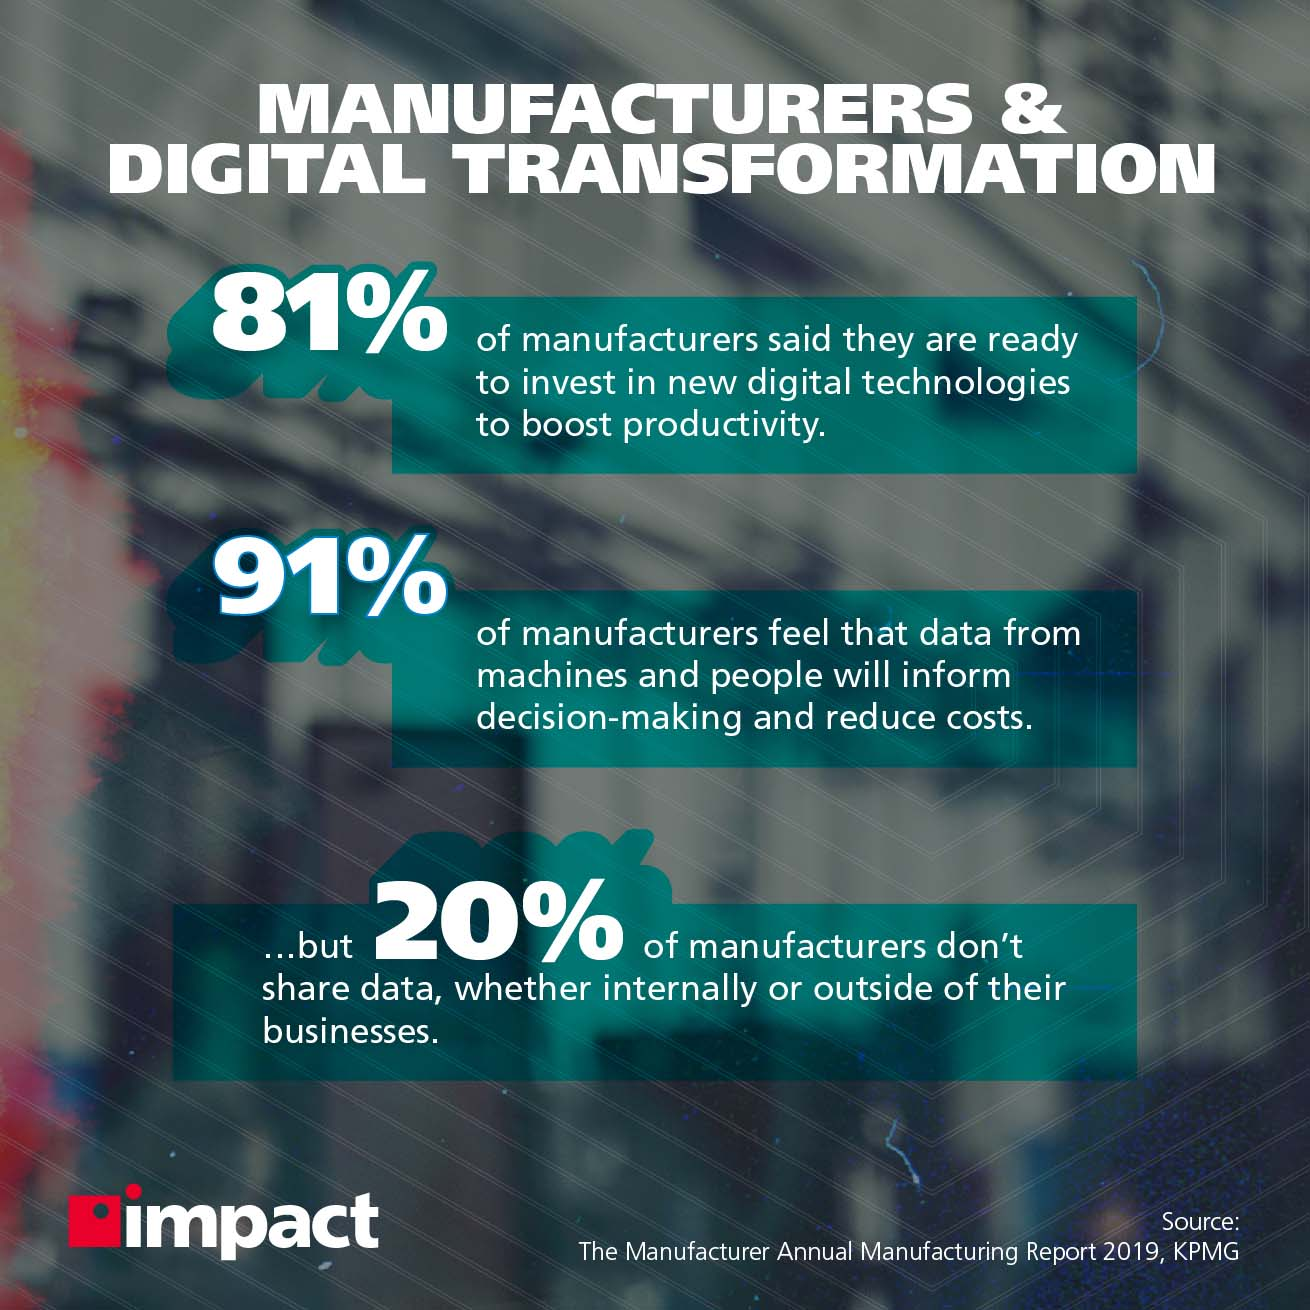 Stats on Manufacturers using digital transformation